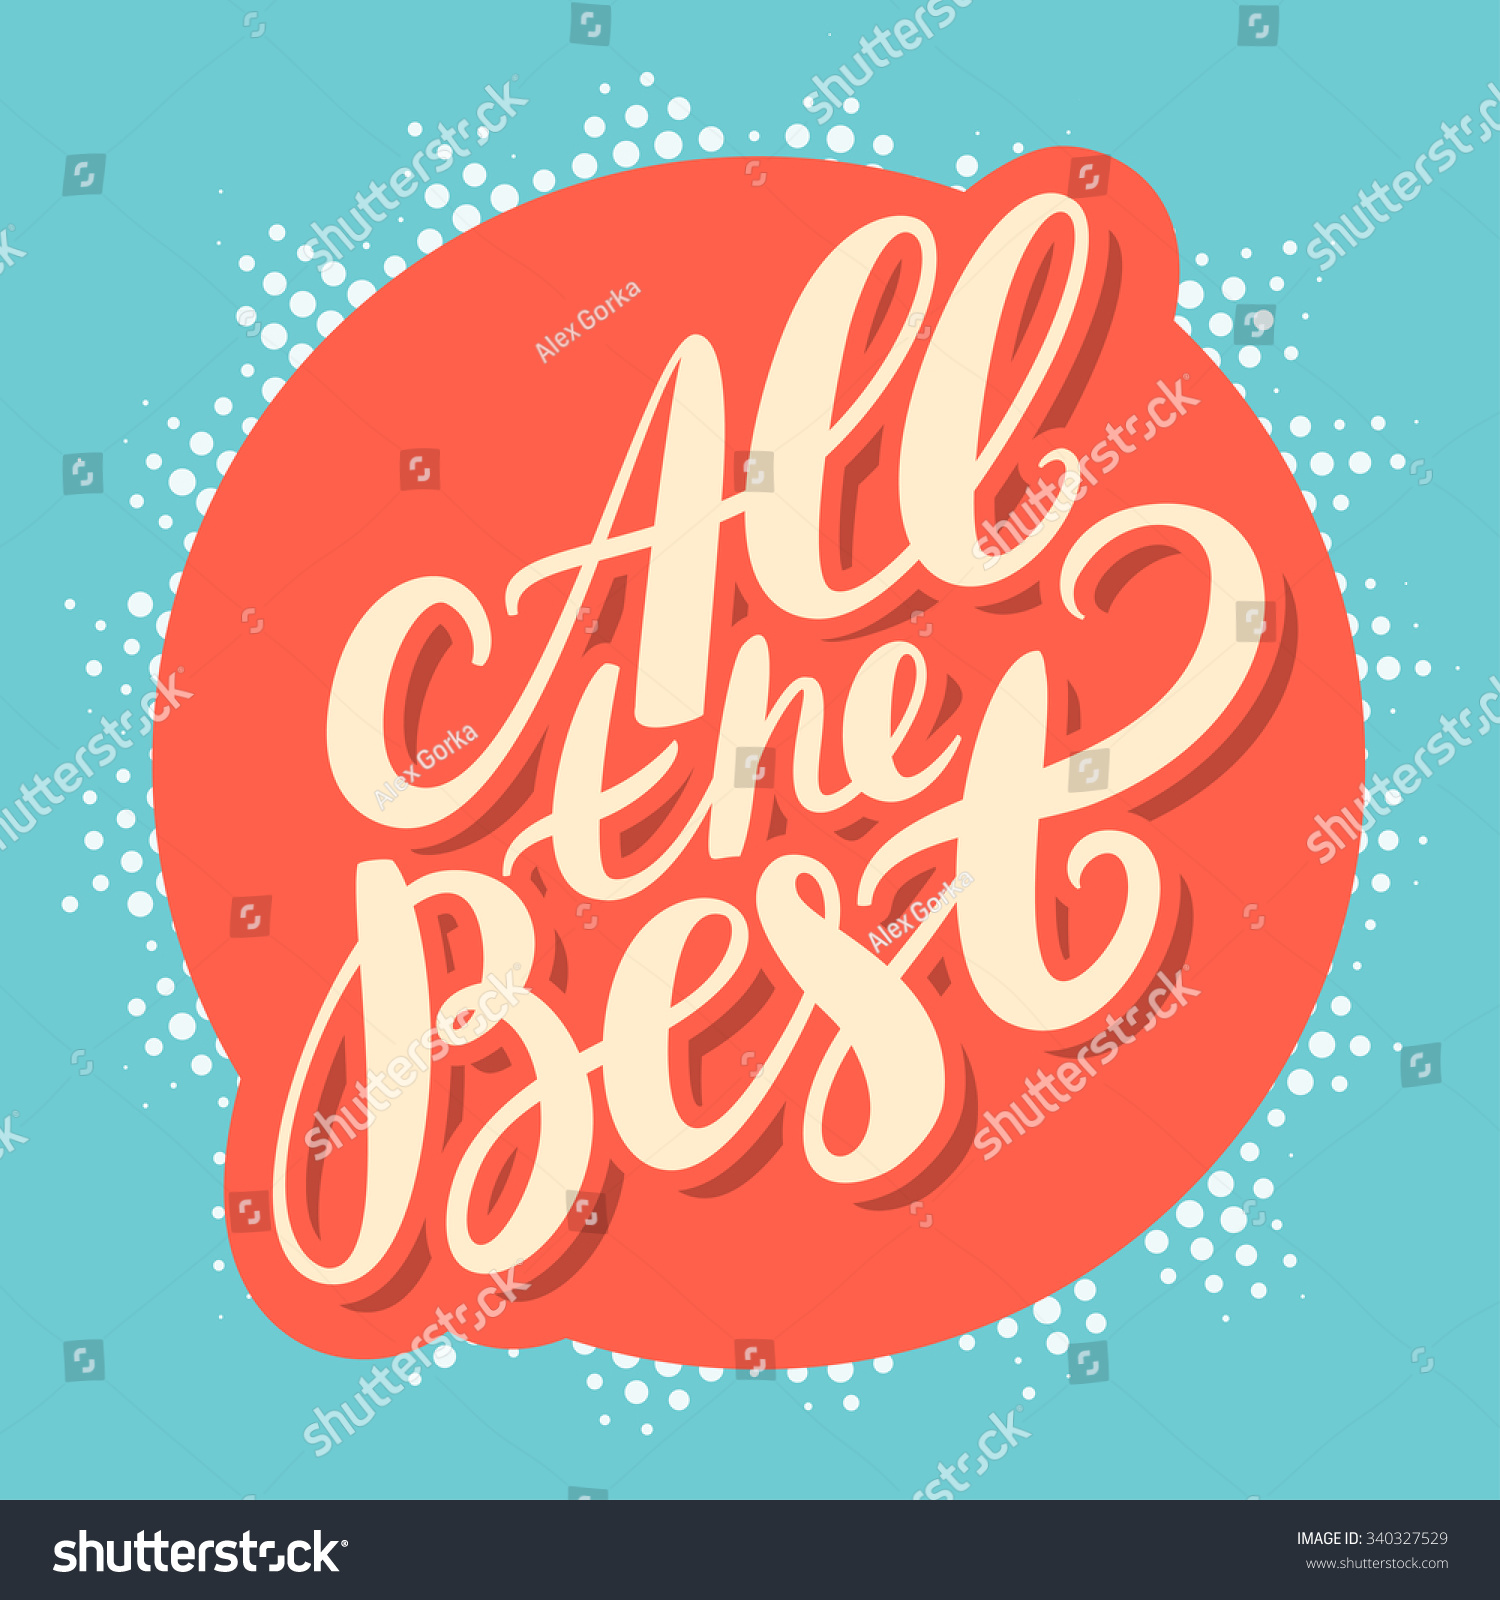 All the best stock vector illustration 340327529 for All the very best images